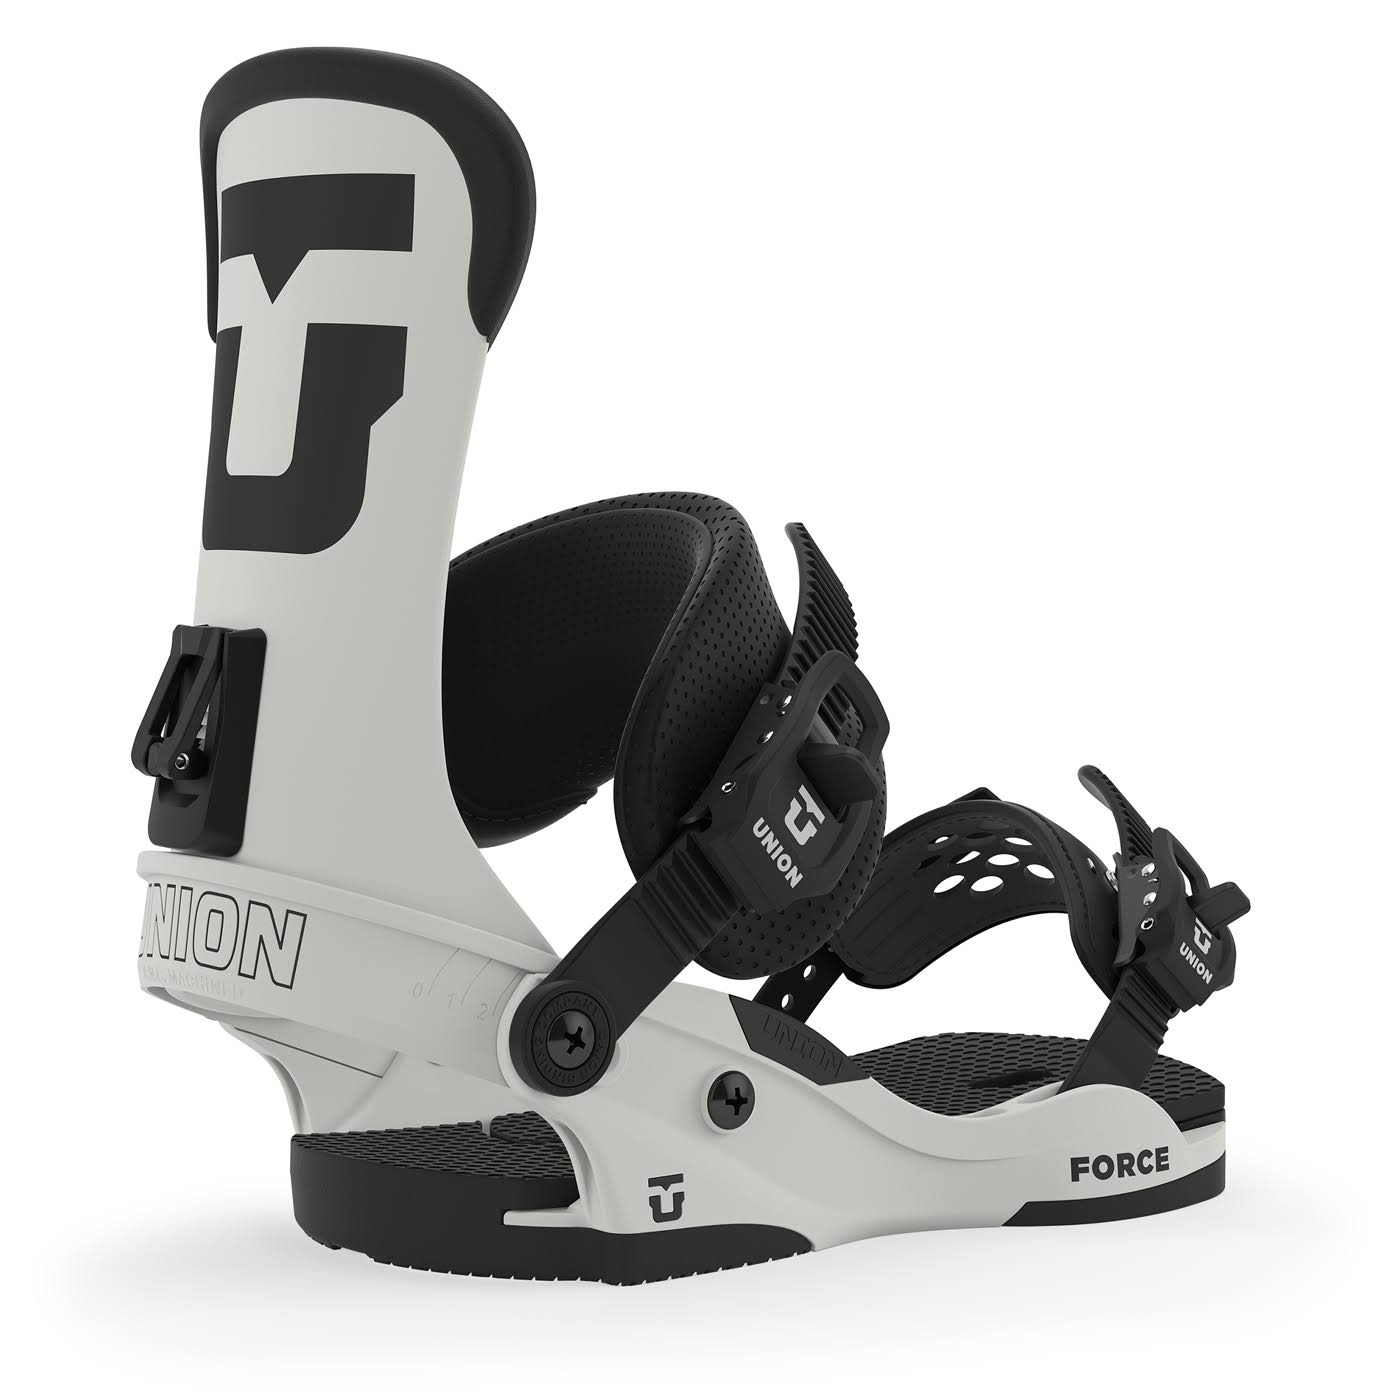 Union Force Men's Snowboard Bindings - White, Large